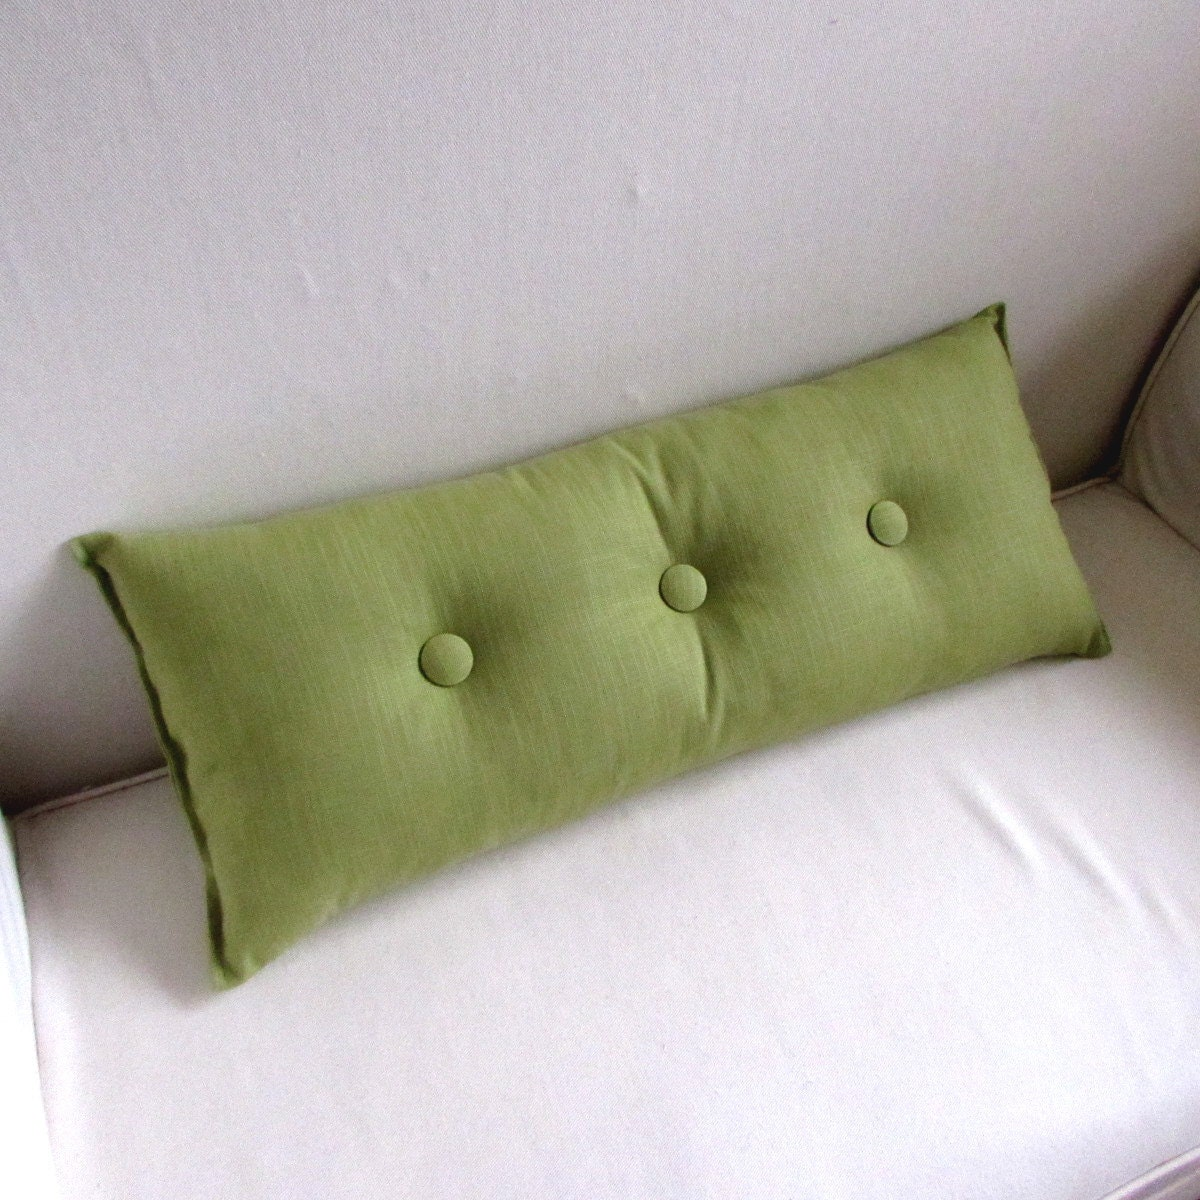 decorative lumbar pillow in PEAR GREEN with Pear Green buttons